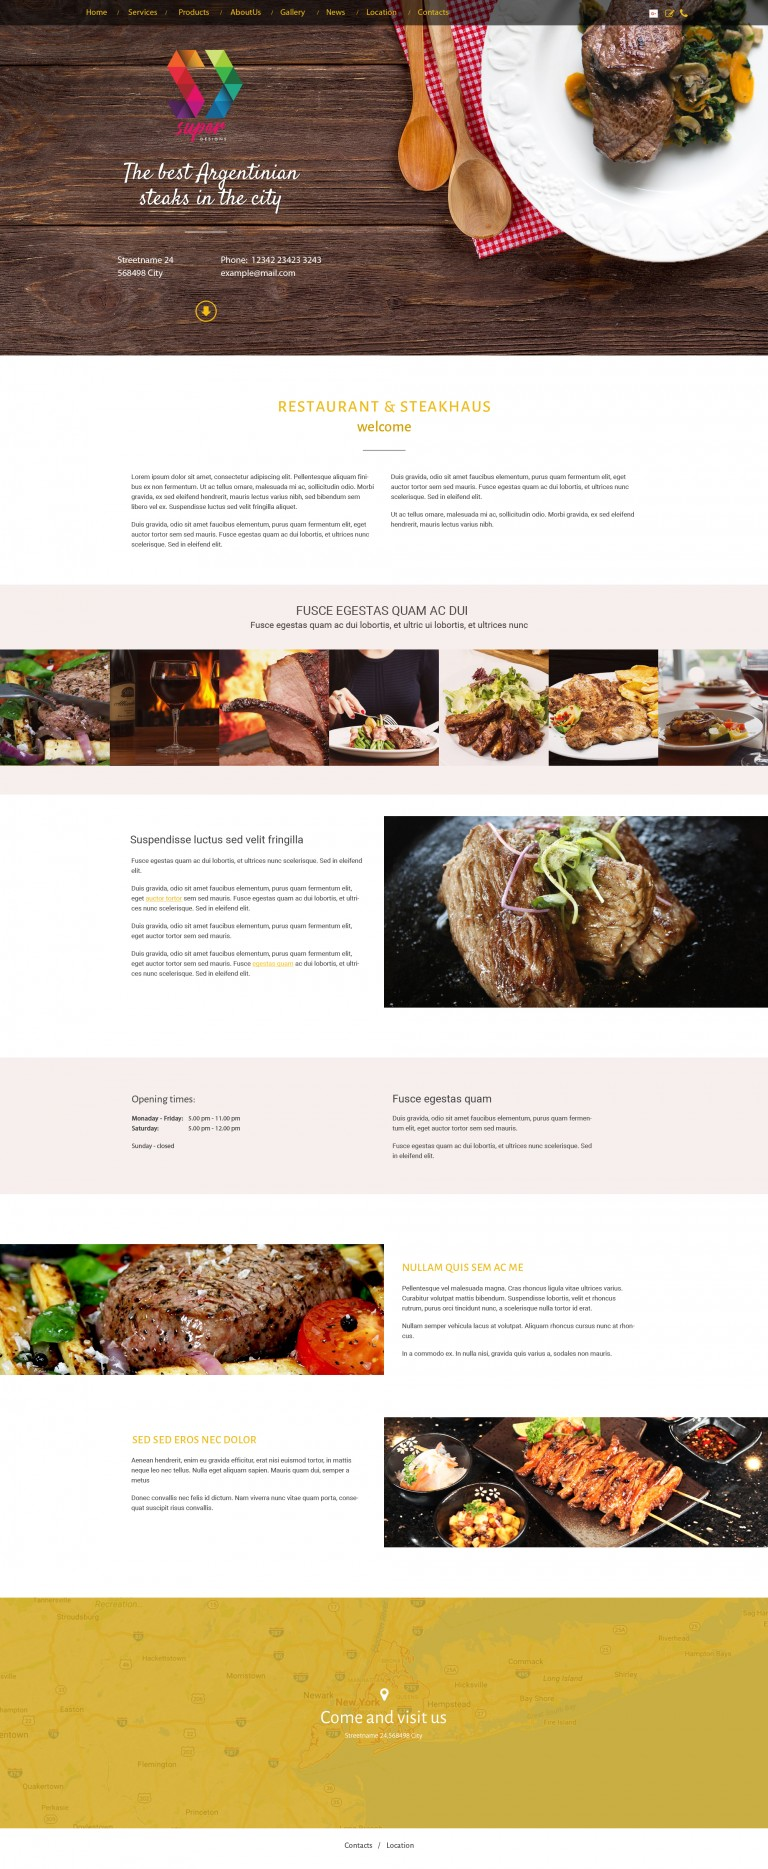 Steakhouse Restaurant PSD Template